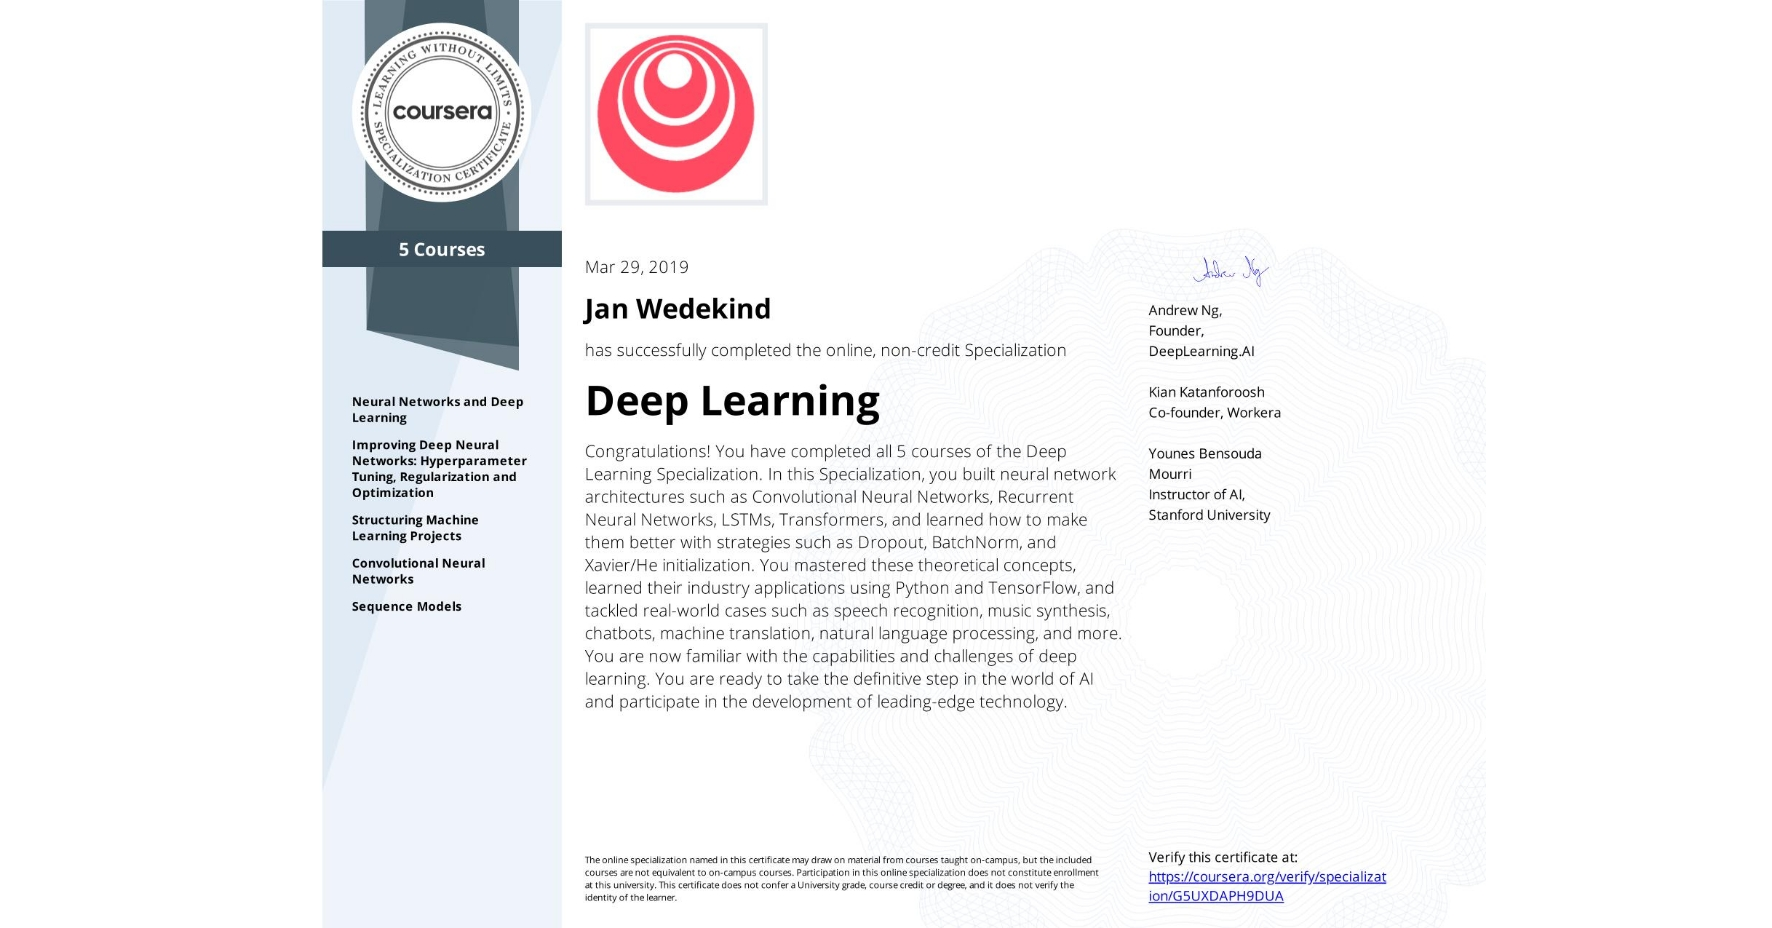 View certificate for Jan Wedekind, Deep Learning, offered through Coursera. Congratulations! You have completed all 5 courses of the Deep Learning Specialization.  In this Specialization, you built neural network architectures such as Convolutional Neural Networks, Recurrent Neural Networks, LSTMs, Transformers, and learned how to make them better with strategies such as Dropout, BatchNorm, and Xavier/He initialization. You mastered these theoretical concepts, learned their industry applications using Python and TensorFlow, and tackled real-world cases such as speech recognition, music synthesis, chatbots, machine translation, natural language processing, and more.  You are now familiar with the capabilities and challenges of deep learning. You are ready to take the definitive step in the world of AI and participate in the development of leading-edge technology.